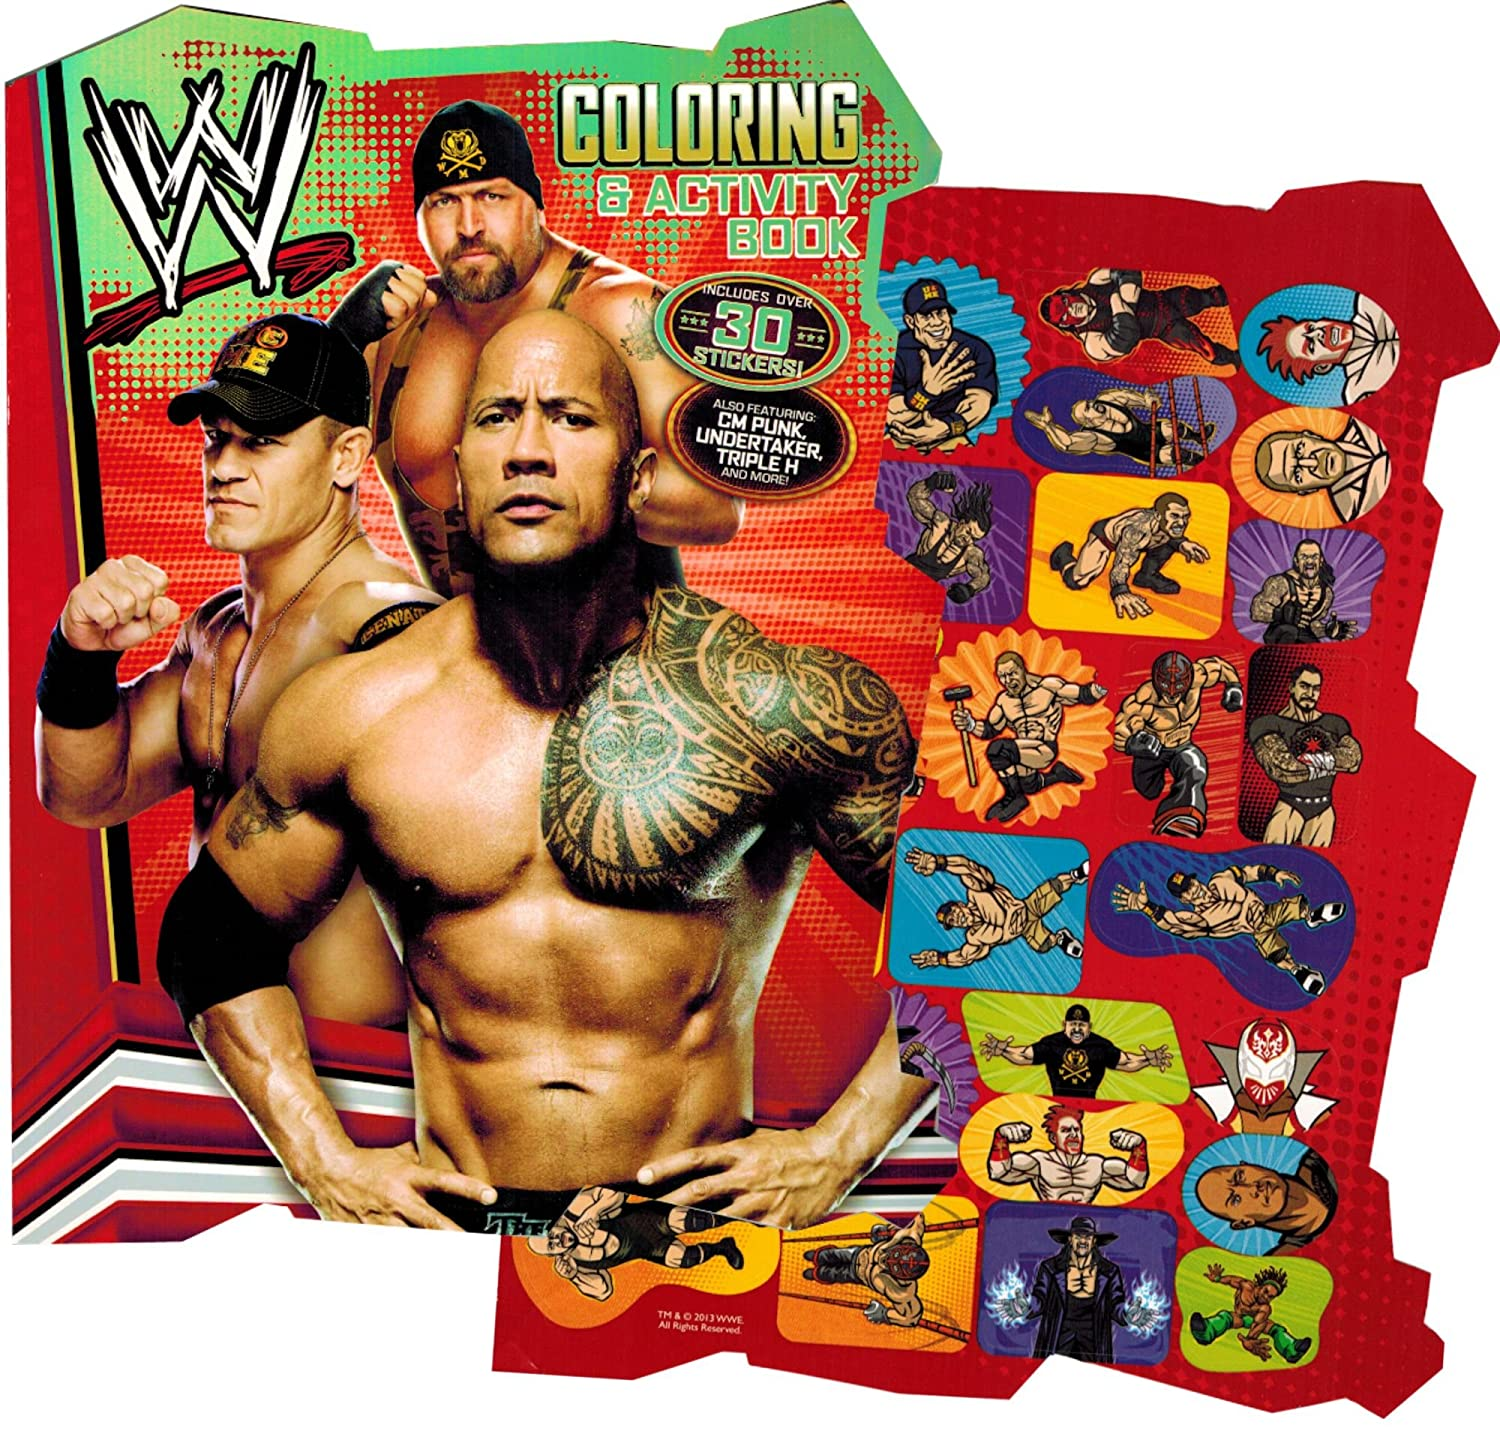 amazoncom wwe world wrestling shaped coloring book with stickers arts crafts sewing - Wwe Coloring Books